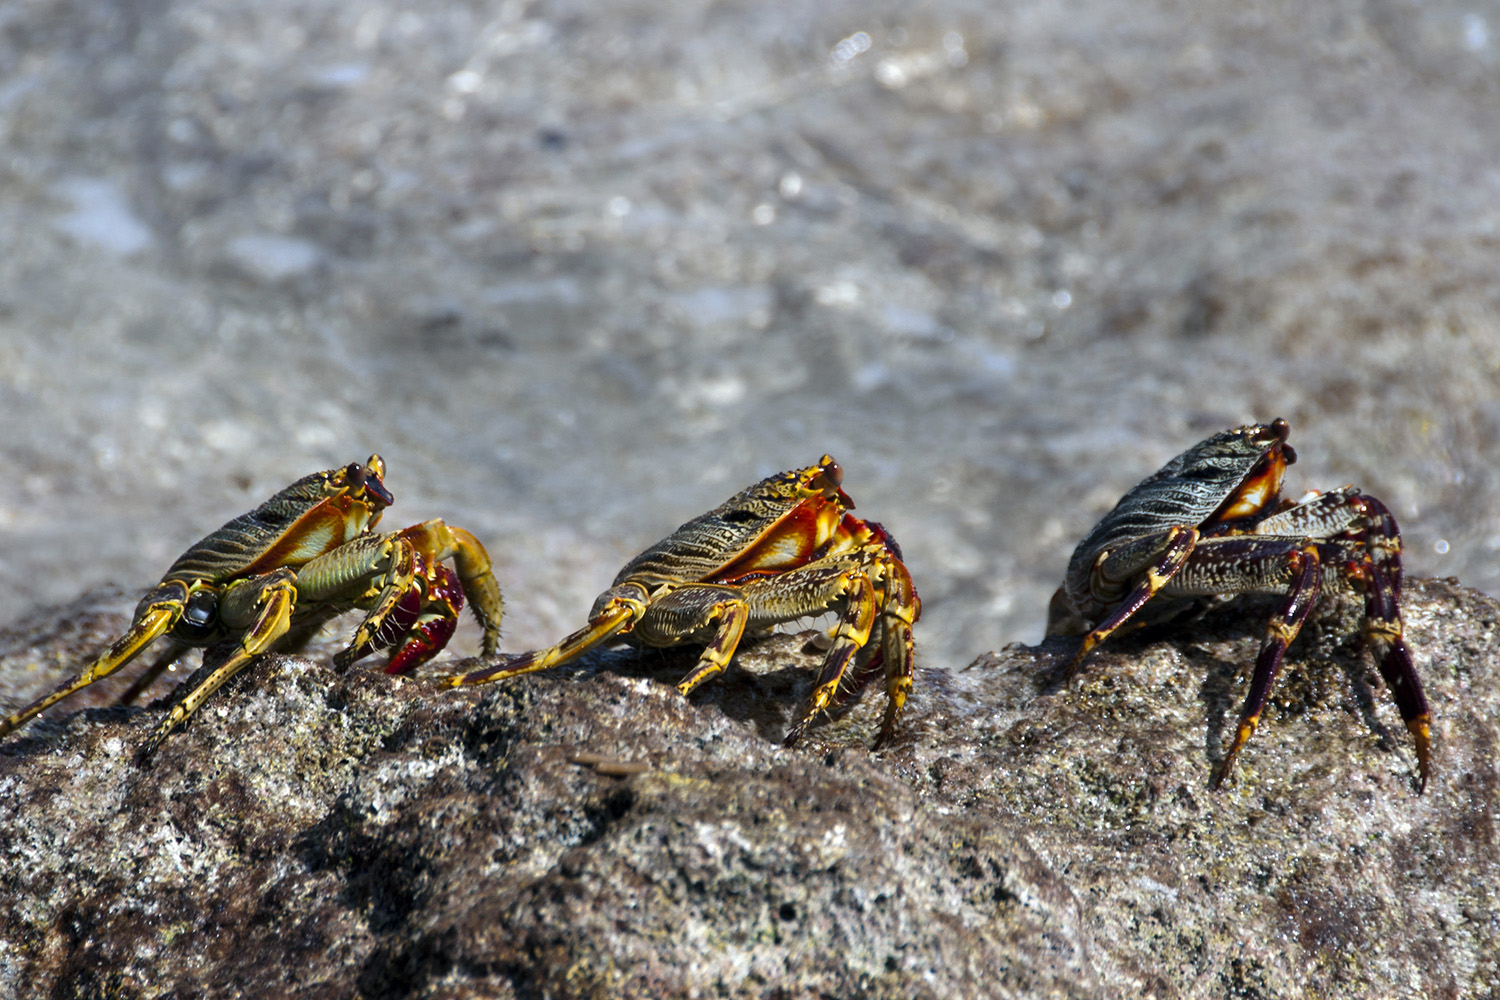 Pale Lined Rock crabs scamper around the rocky shore